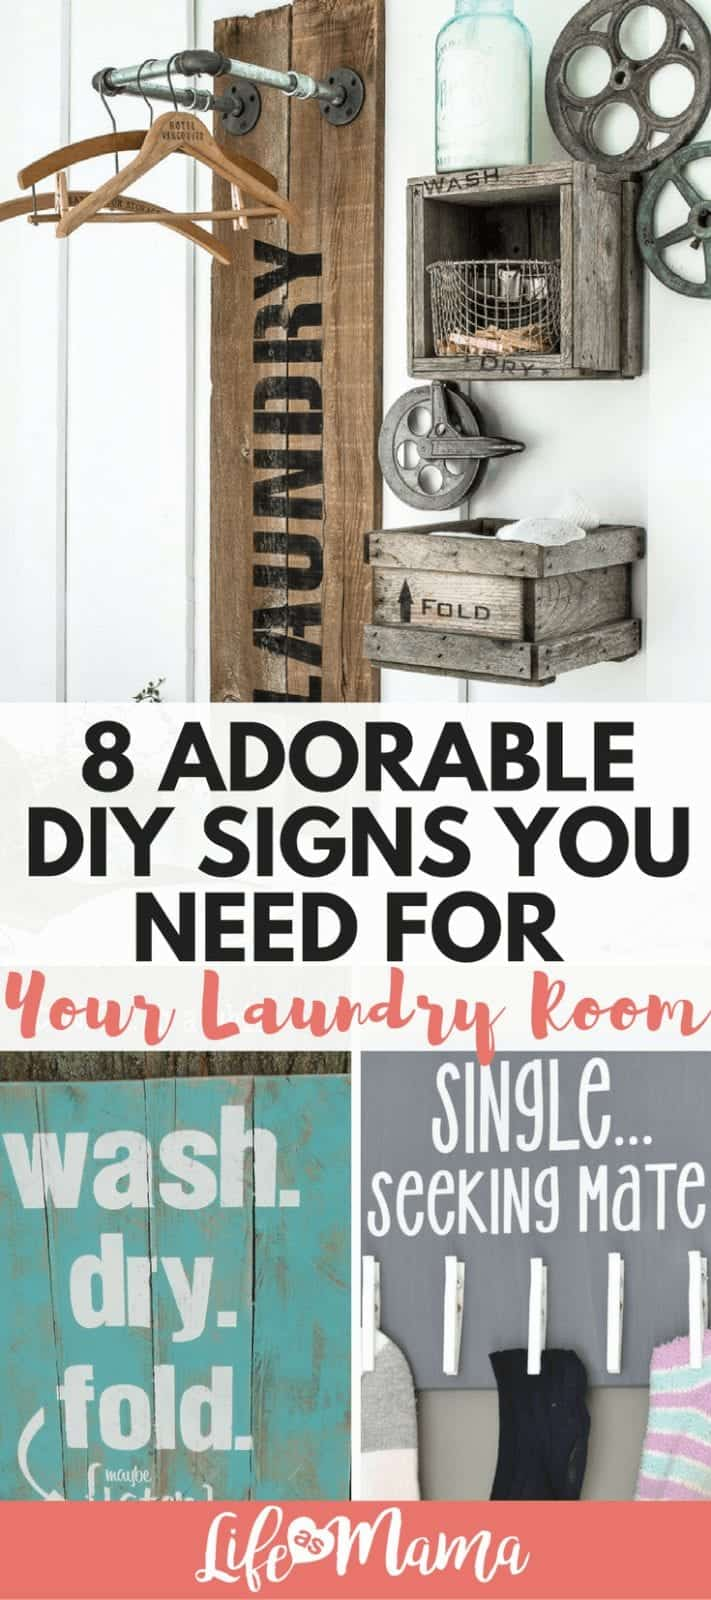 This is a picture of Free Printable Laundry Room Signs for template